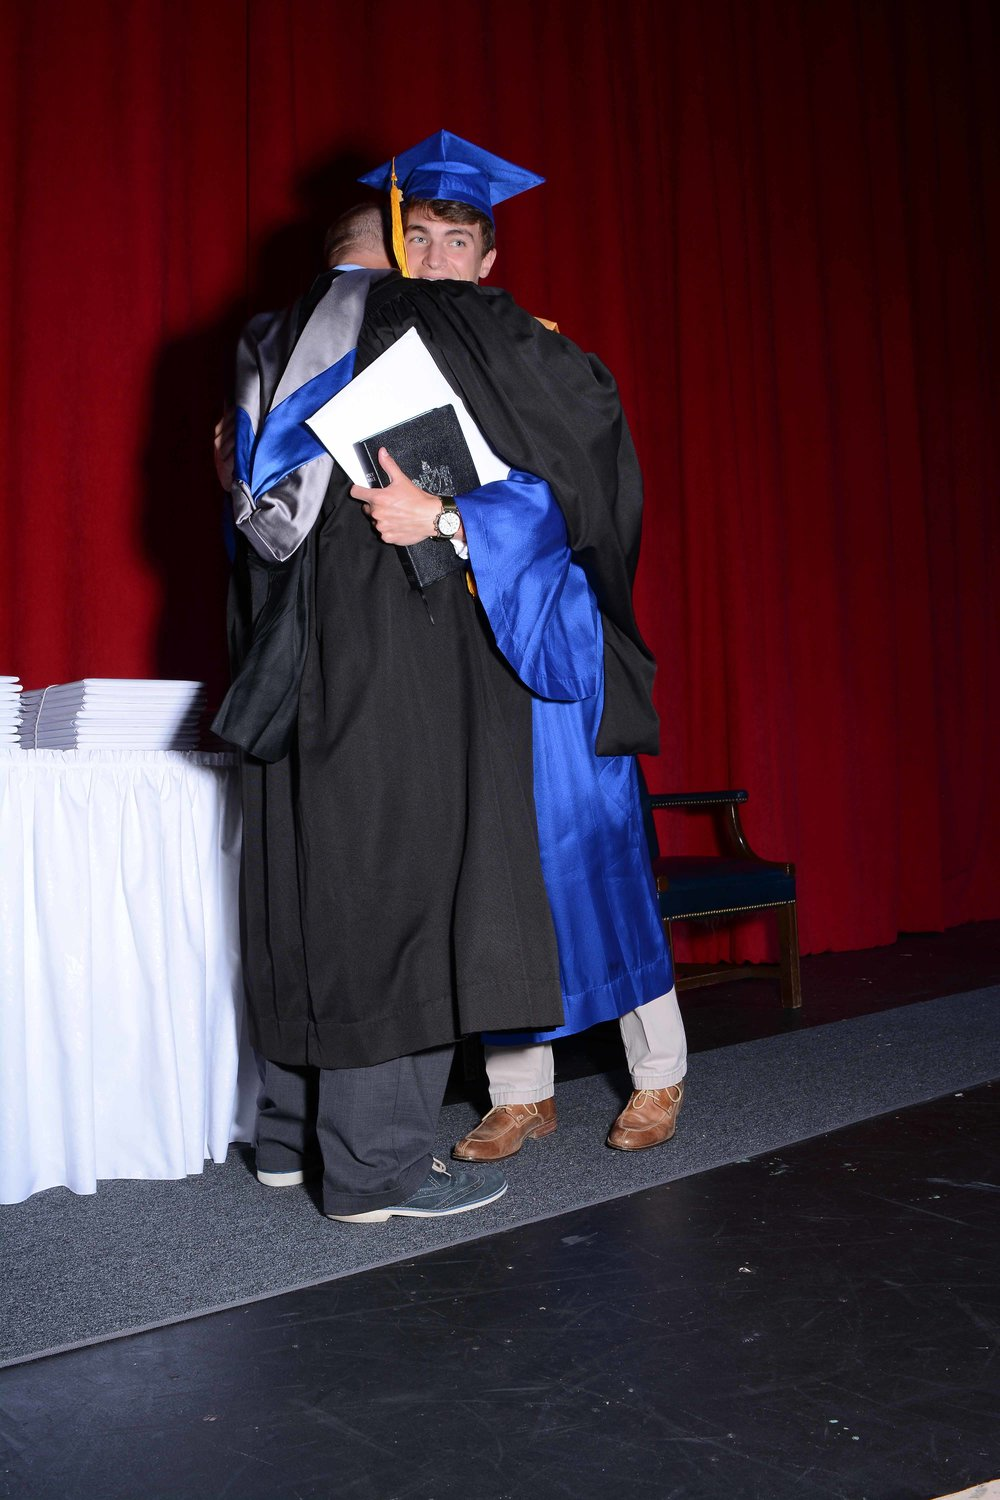 May14 Commencement65.jpg